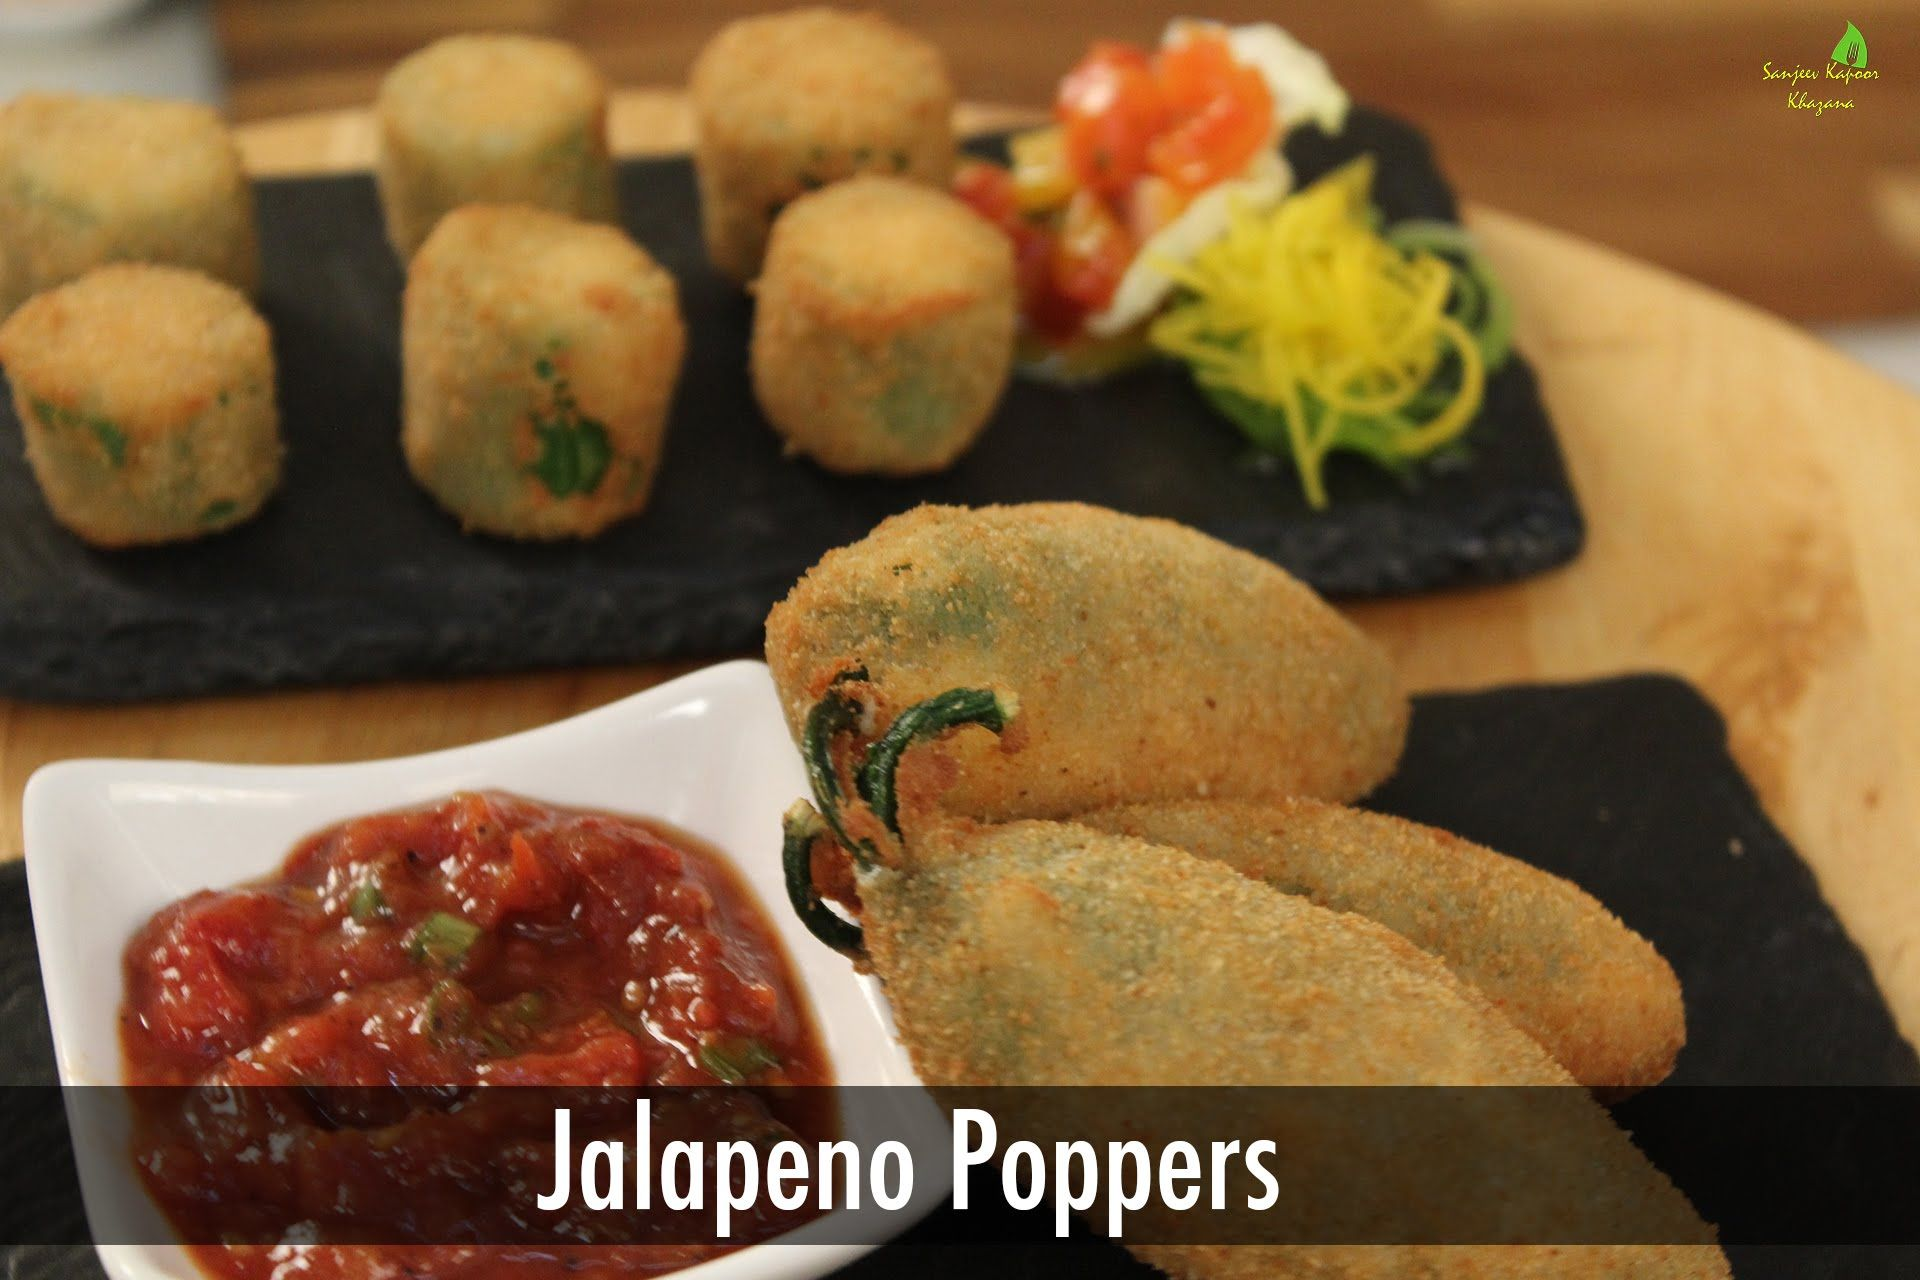 Jalapeno poppers mexican cuisine sanjeev kapoors khana khazana enjoy this easy mouth watering recipe and make dinner with your kids or co workers something to look forward to forumfinder Image collections